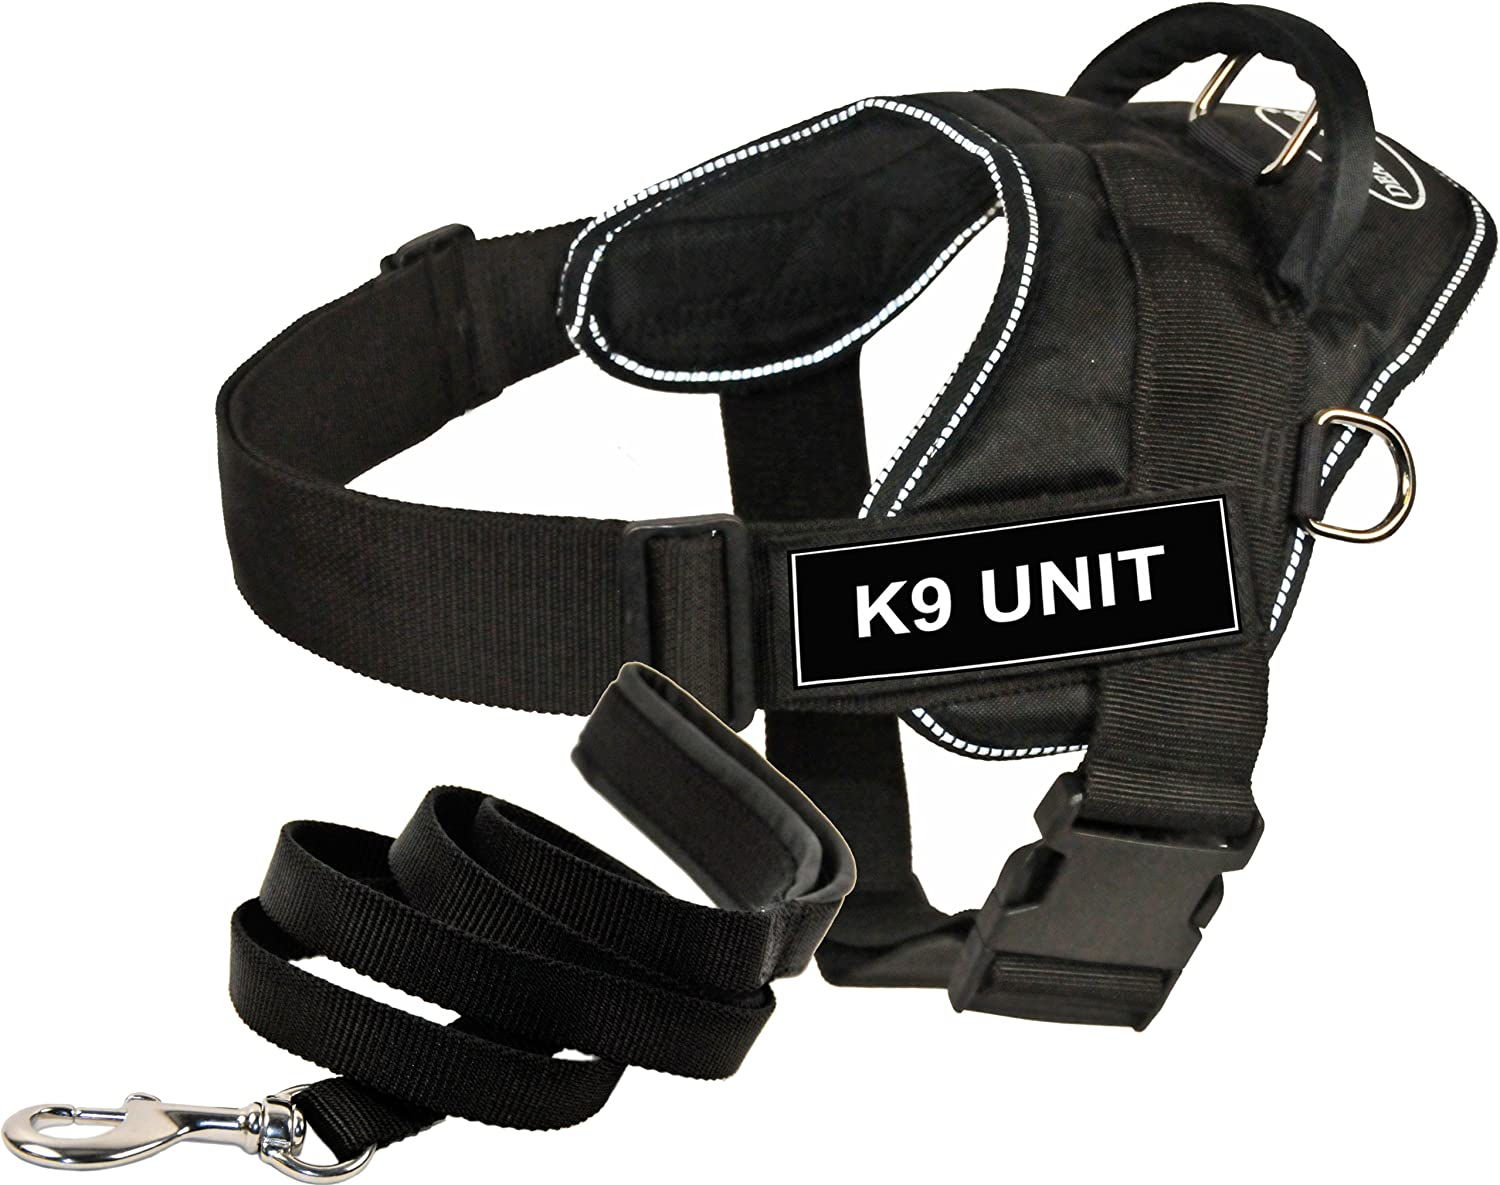 Dean and Tyler Bundle  One DT Fun Works  Harness, K9 Unit, Reflective, Small (22   27 ) + One Padded Puppy  Leash, 6 FT Stainless Snap  Black